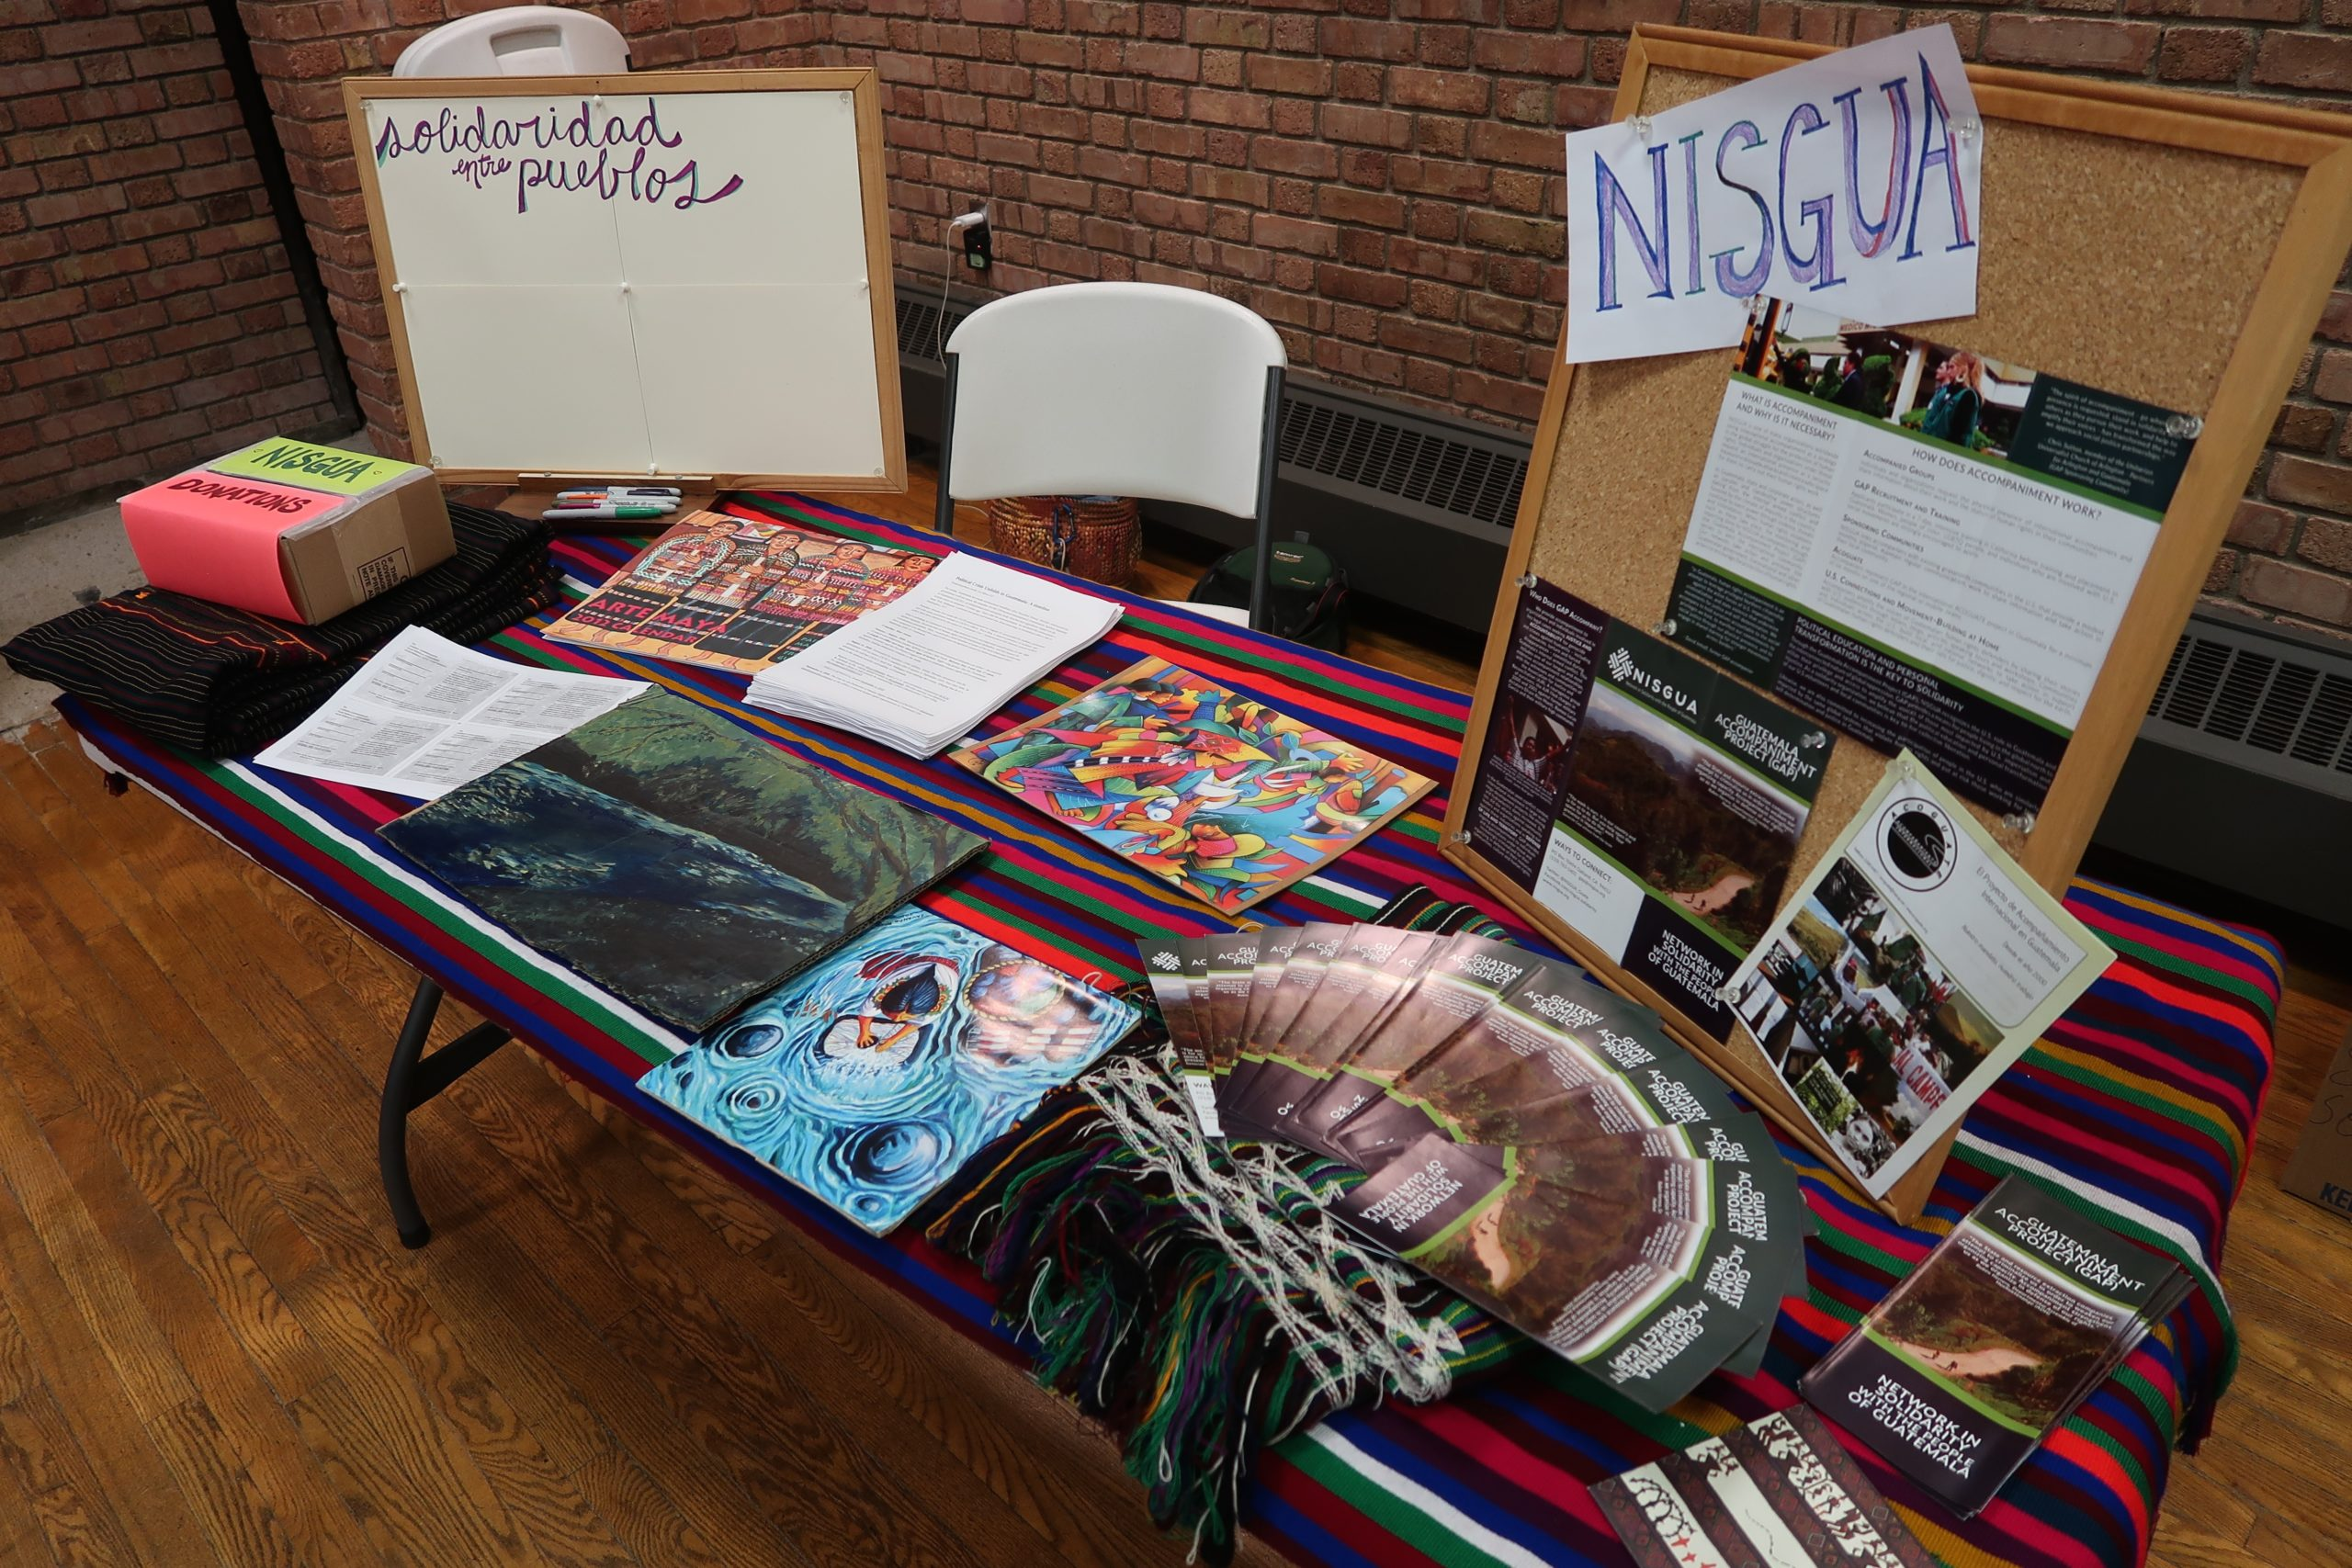 A photograph of a NISGUA table at an event.